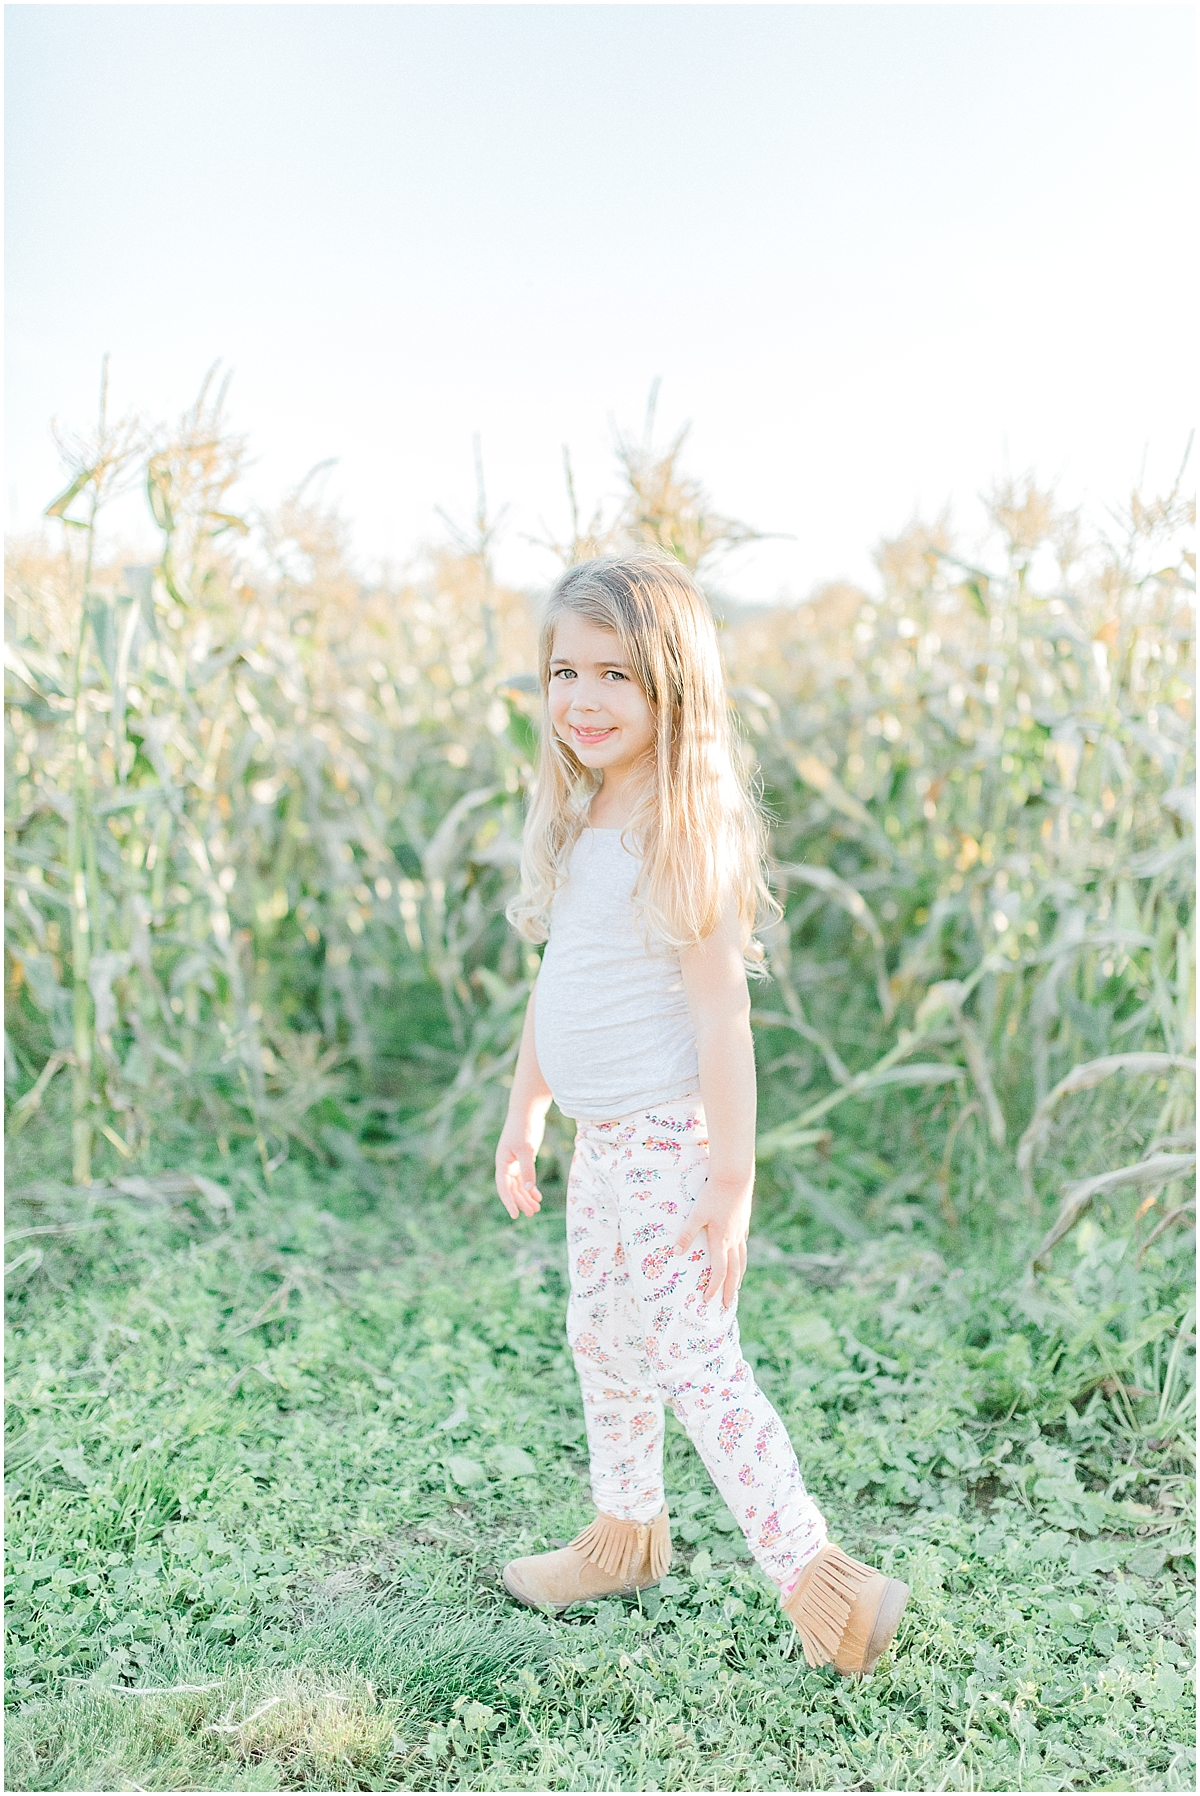 Pumpkin Patch Photo Shoot With Toddler and Mommy | Emma Rose Company Seattle Portland Light and Airy Wedding Photographer | Kindred Presets | Film_0014.jpg